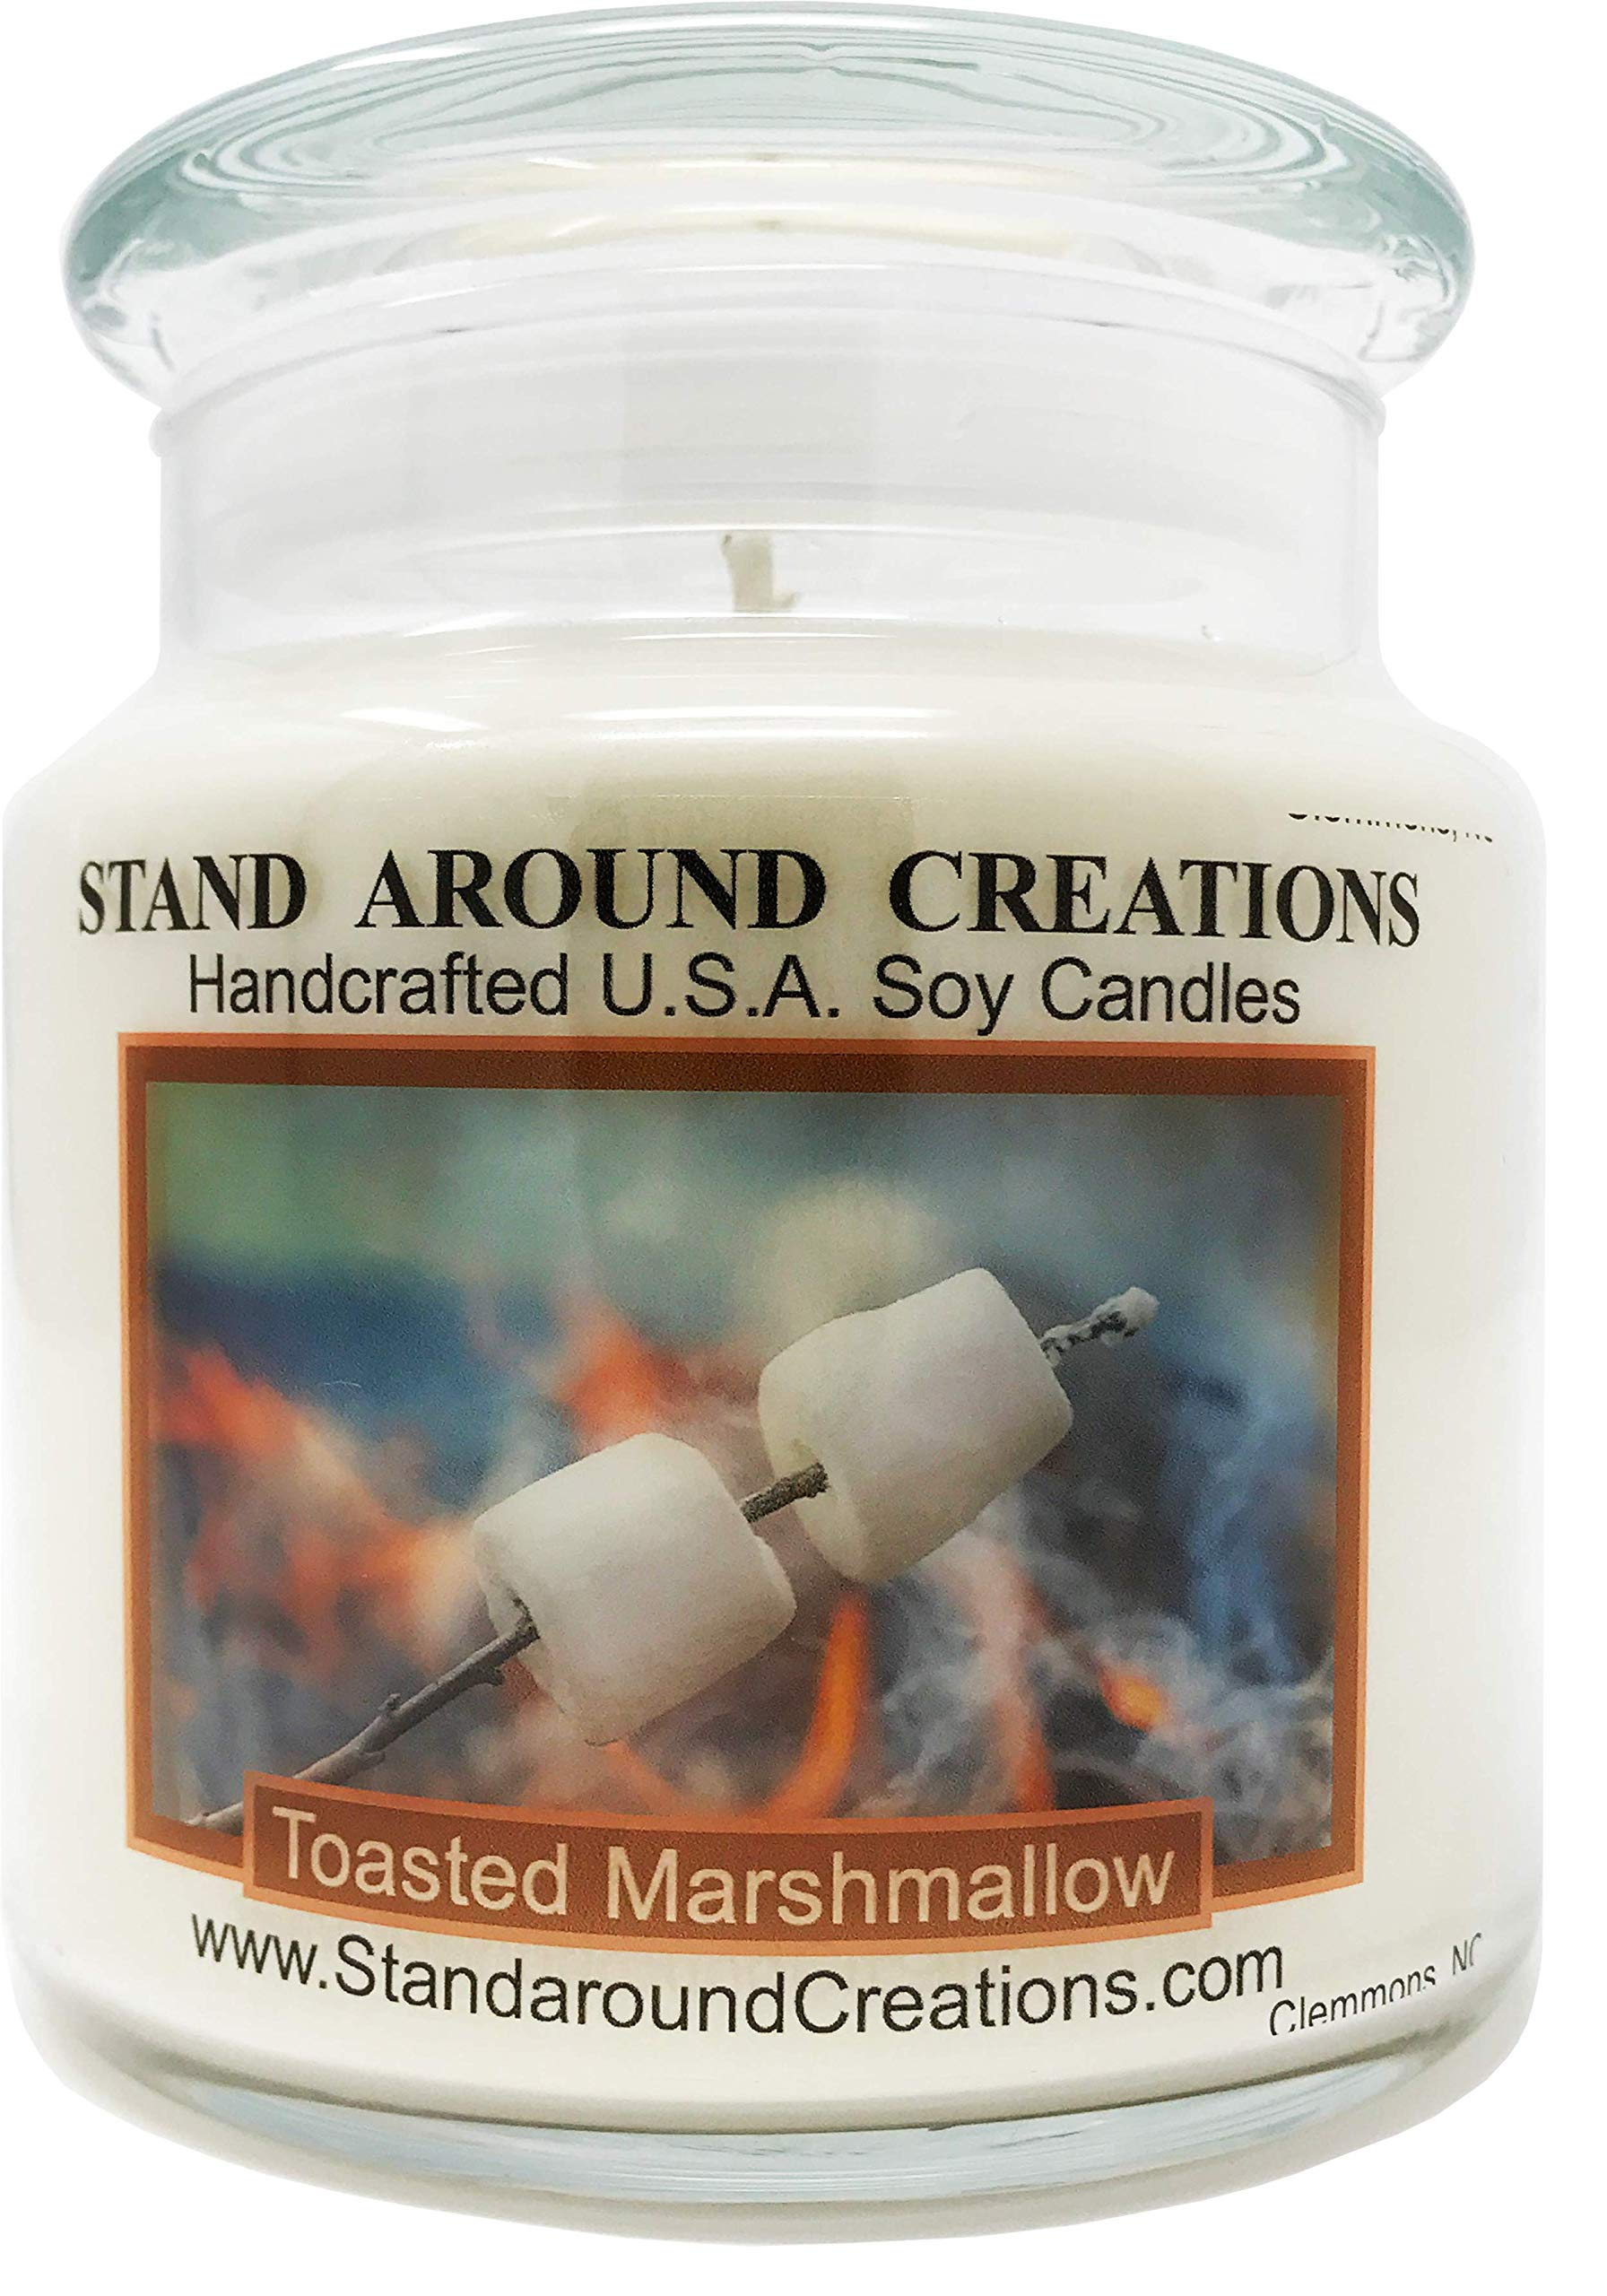 Premium 100% Soy Apothecary Candle - 16 oz. - Toasted Marshmallow - True to its name! Imagine a marshmallow on a stick, just slightly toasted by the fire.